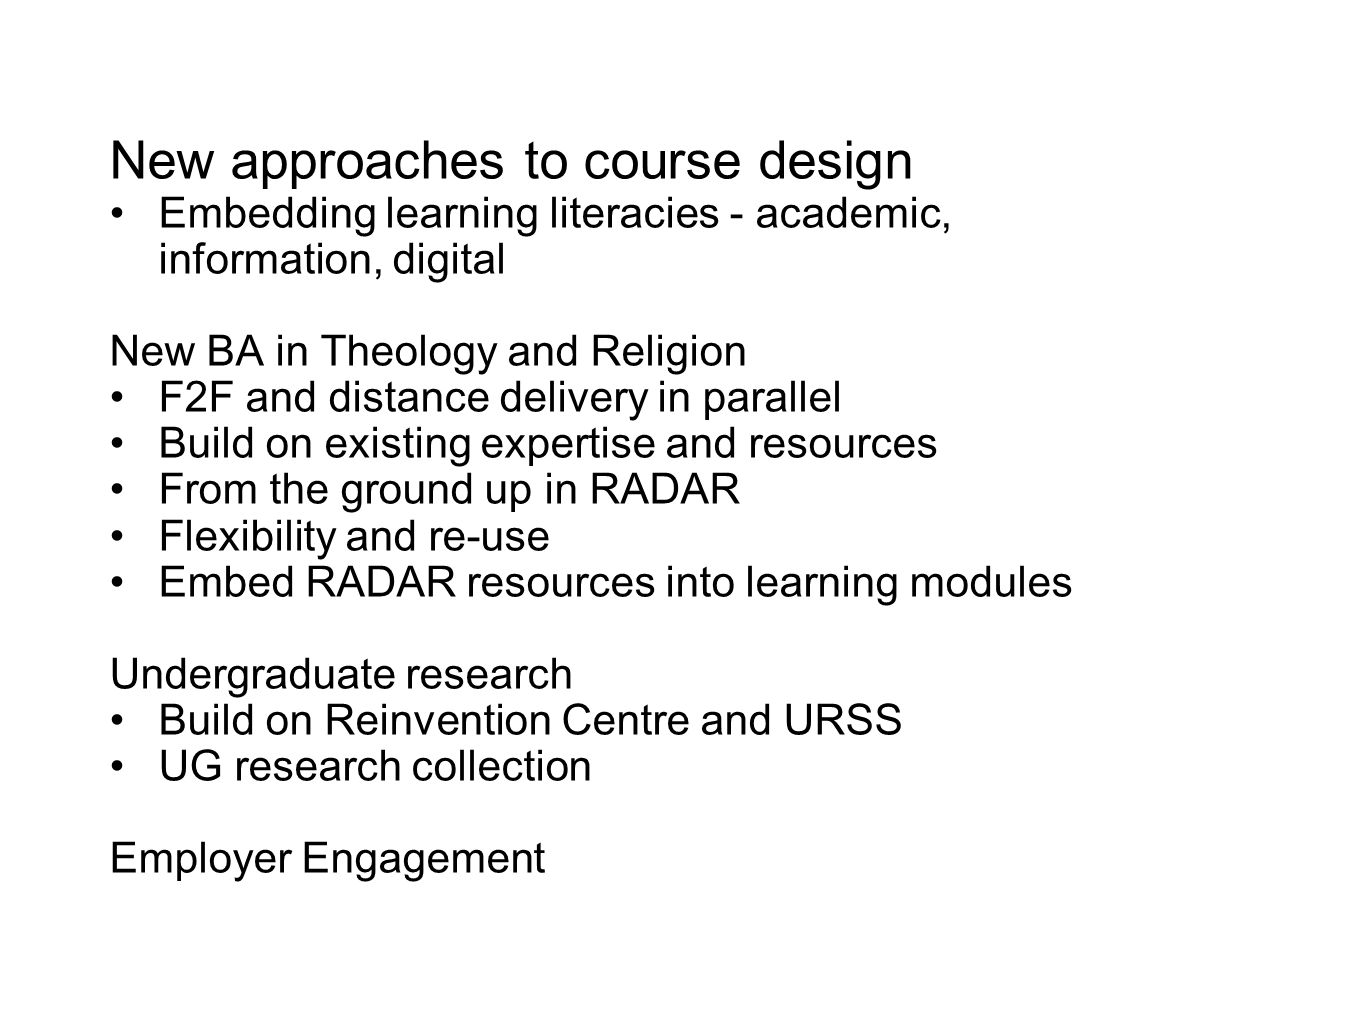 RADAR Research Archive and Digital Asset Repository resources searching quality visibility student experience research managing access publishing Brookes Virtual collaboration online finding Showcasing and Sharing Oxford Brookes Research Managing and Sharing Teaching Resources